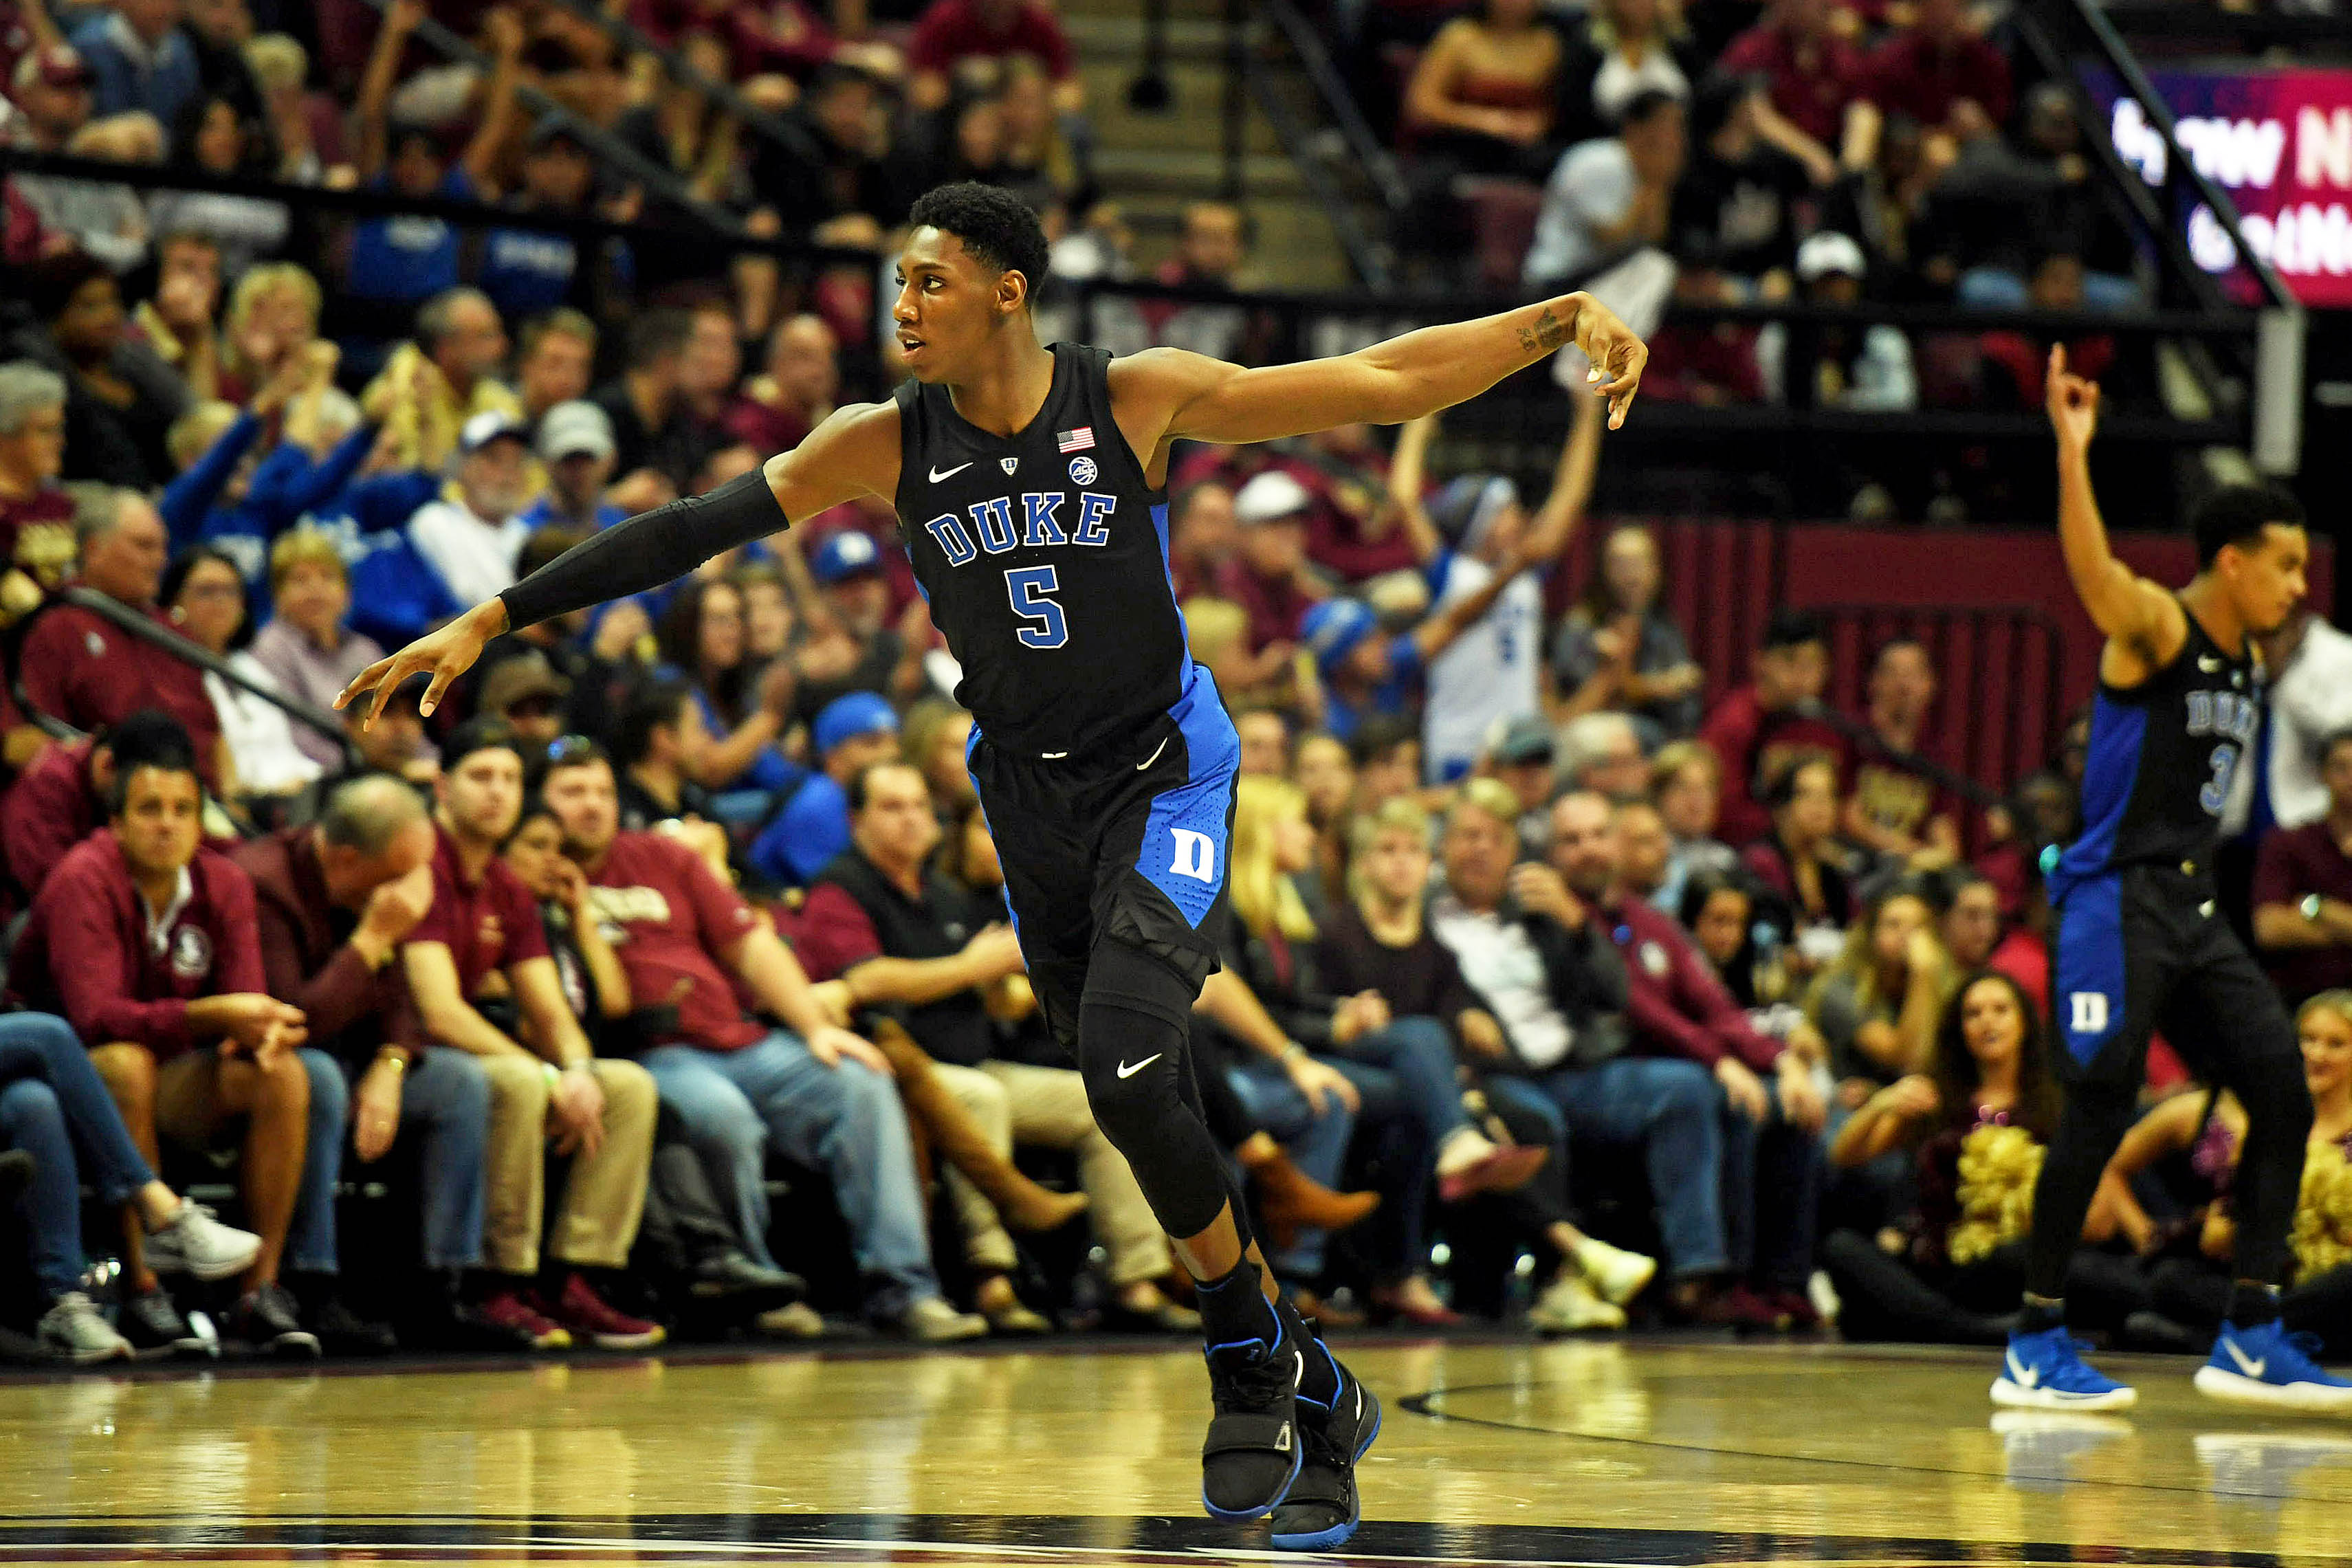 da309f25599 Florida State, other analysis from Saturday's top college basketball scores  | NCAA.com